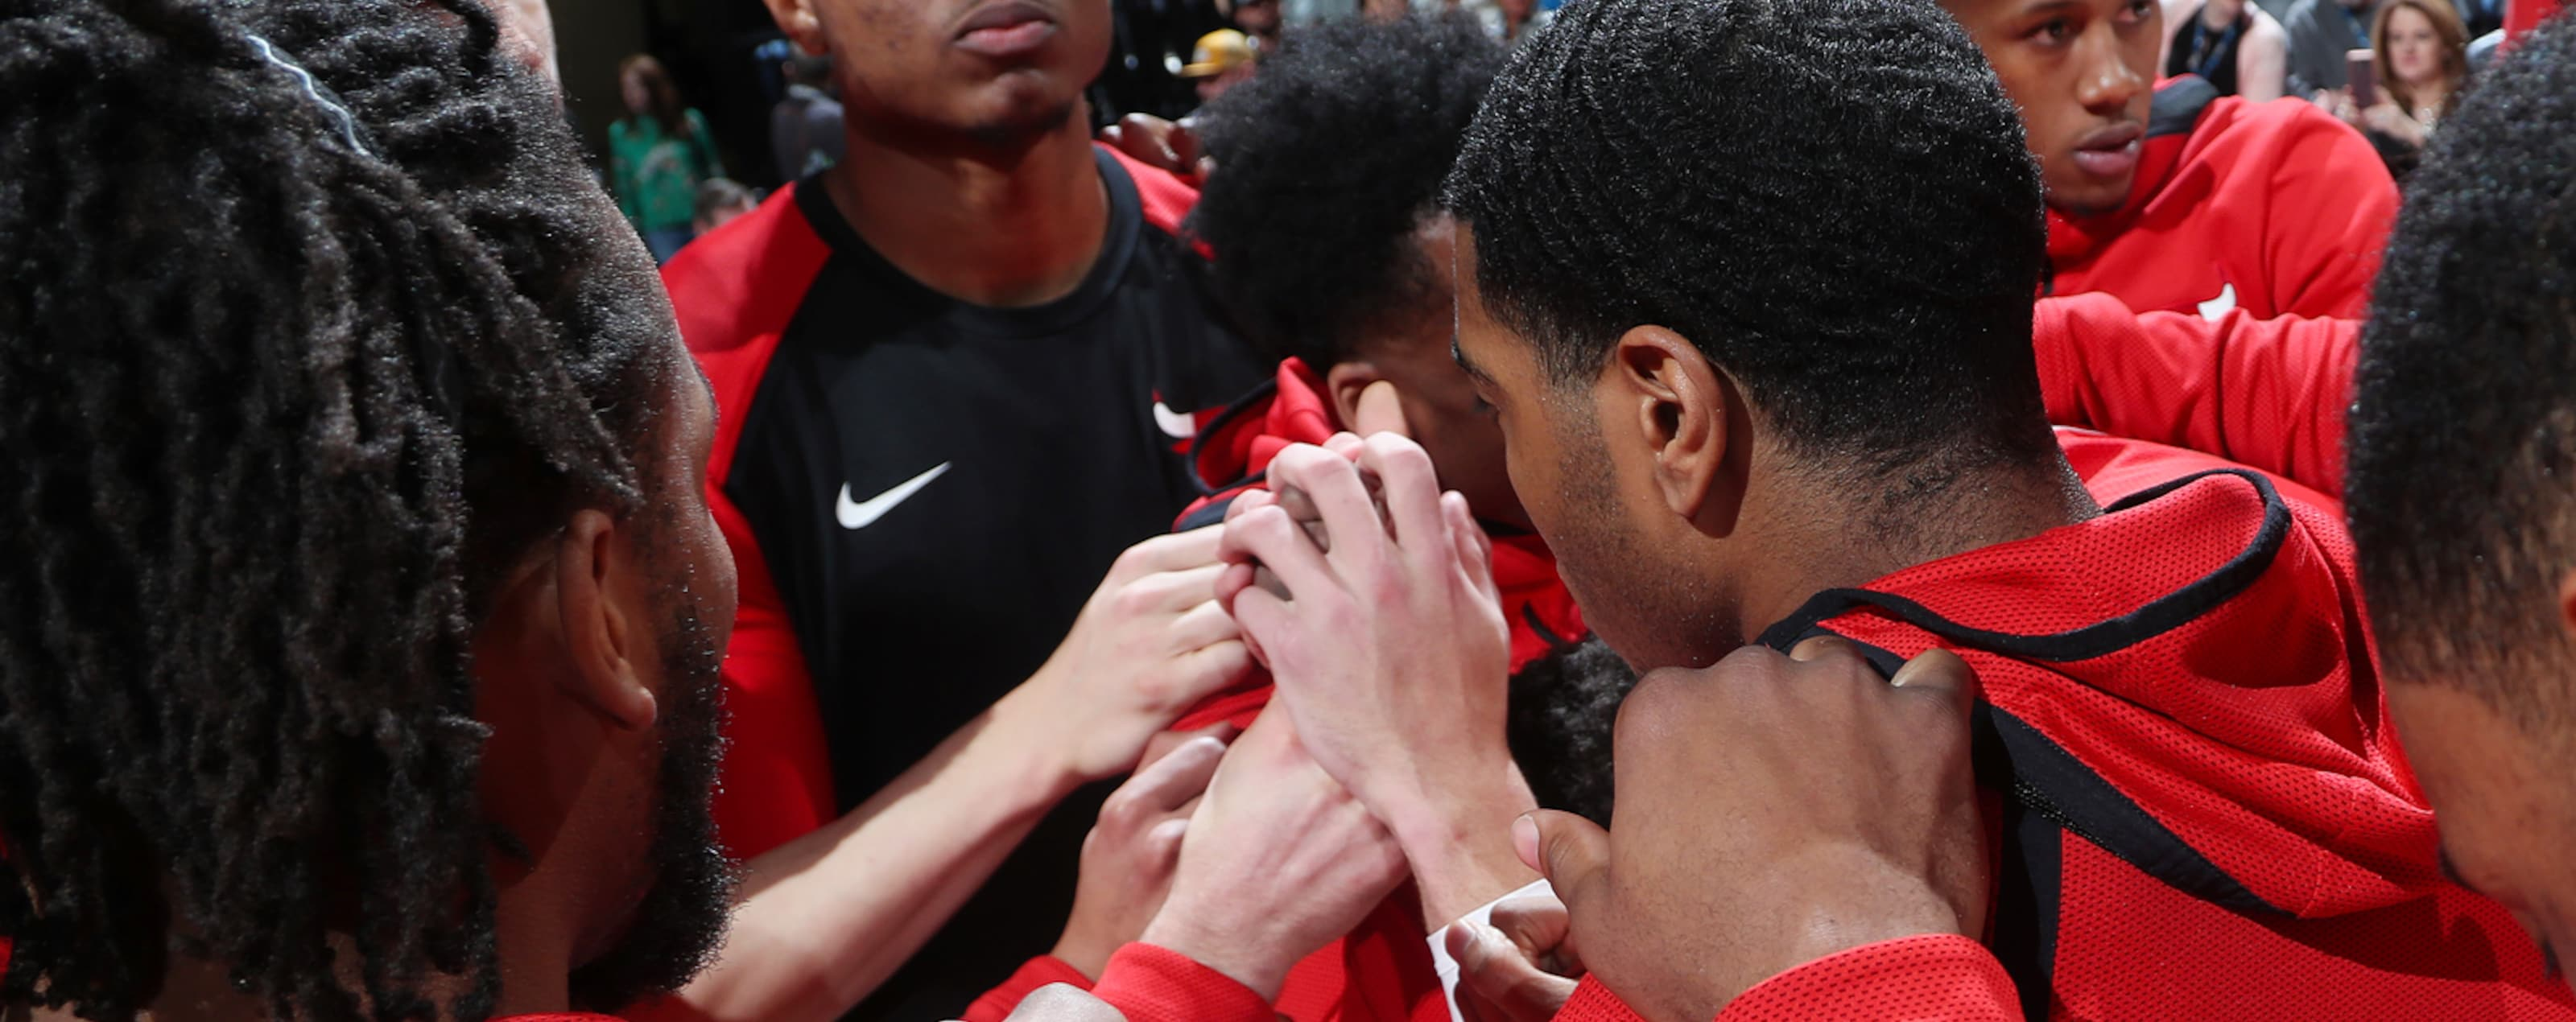 the Chicago Bulls huddle pregame